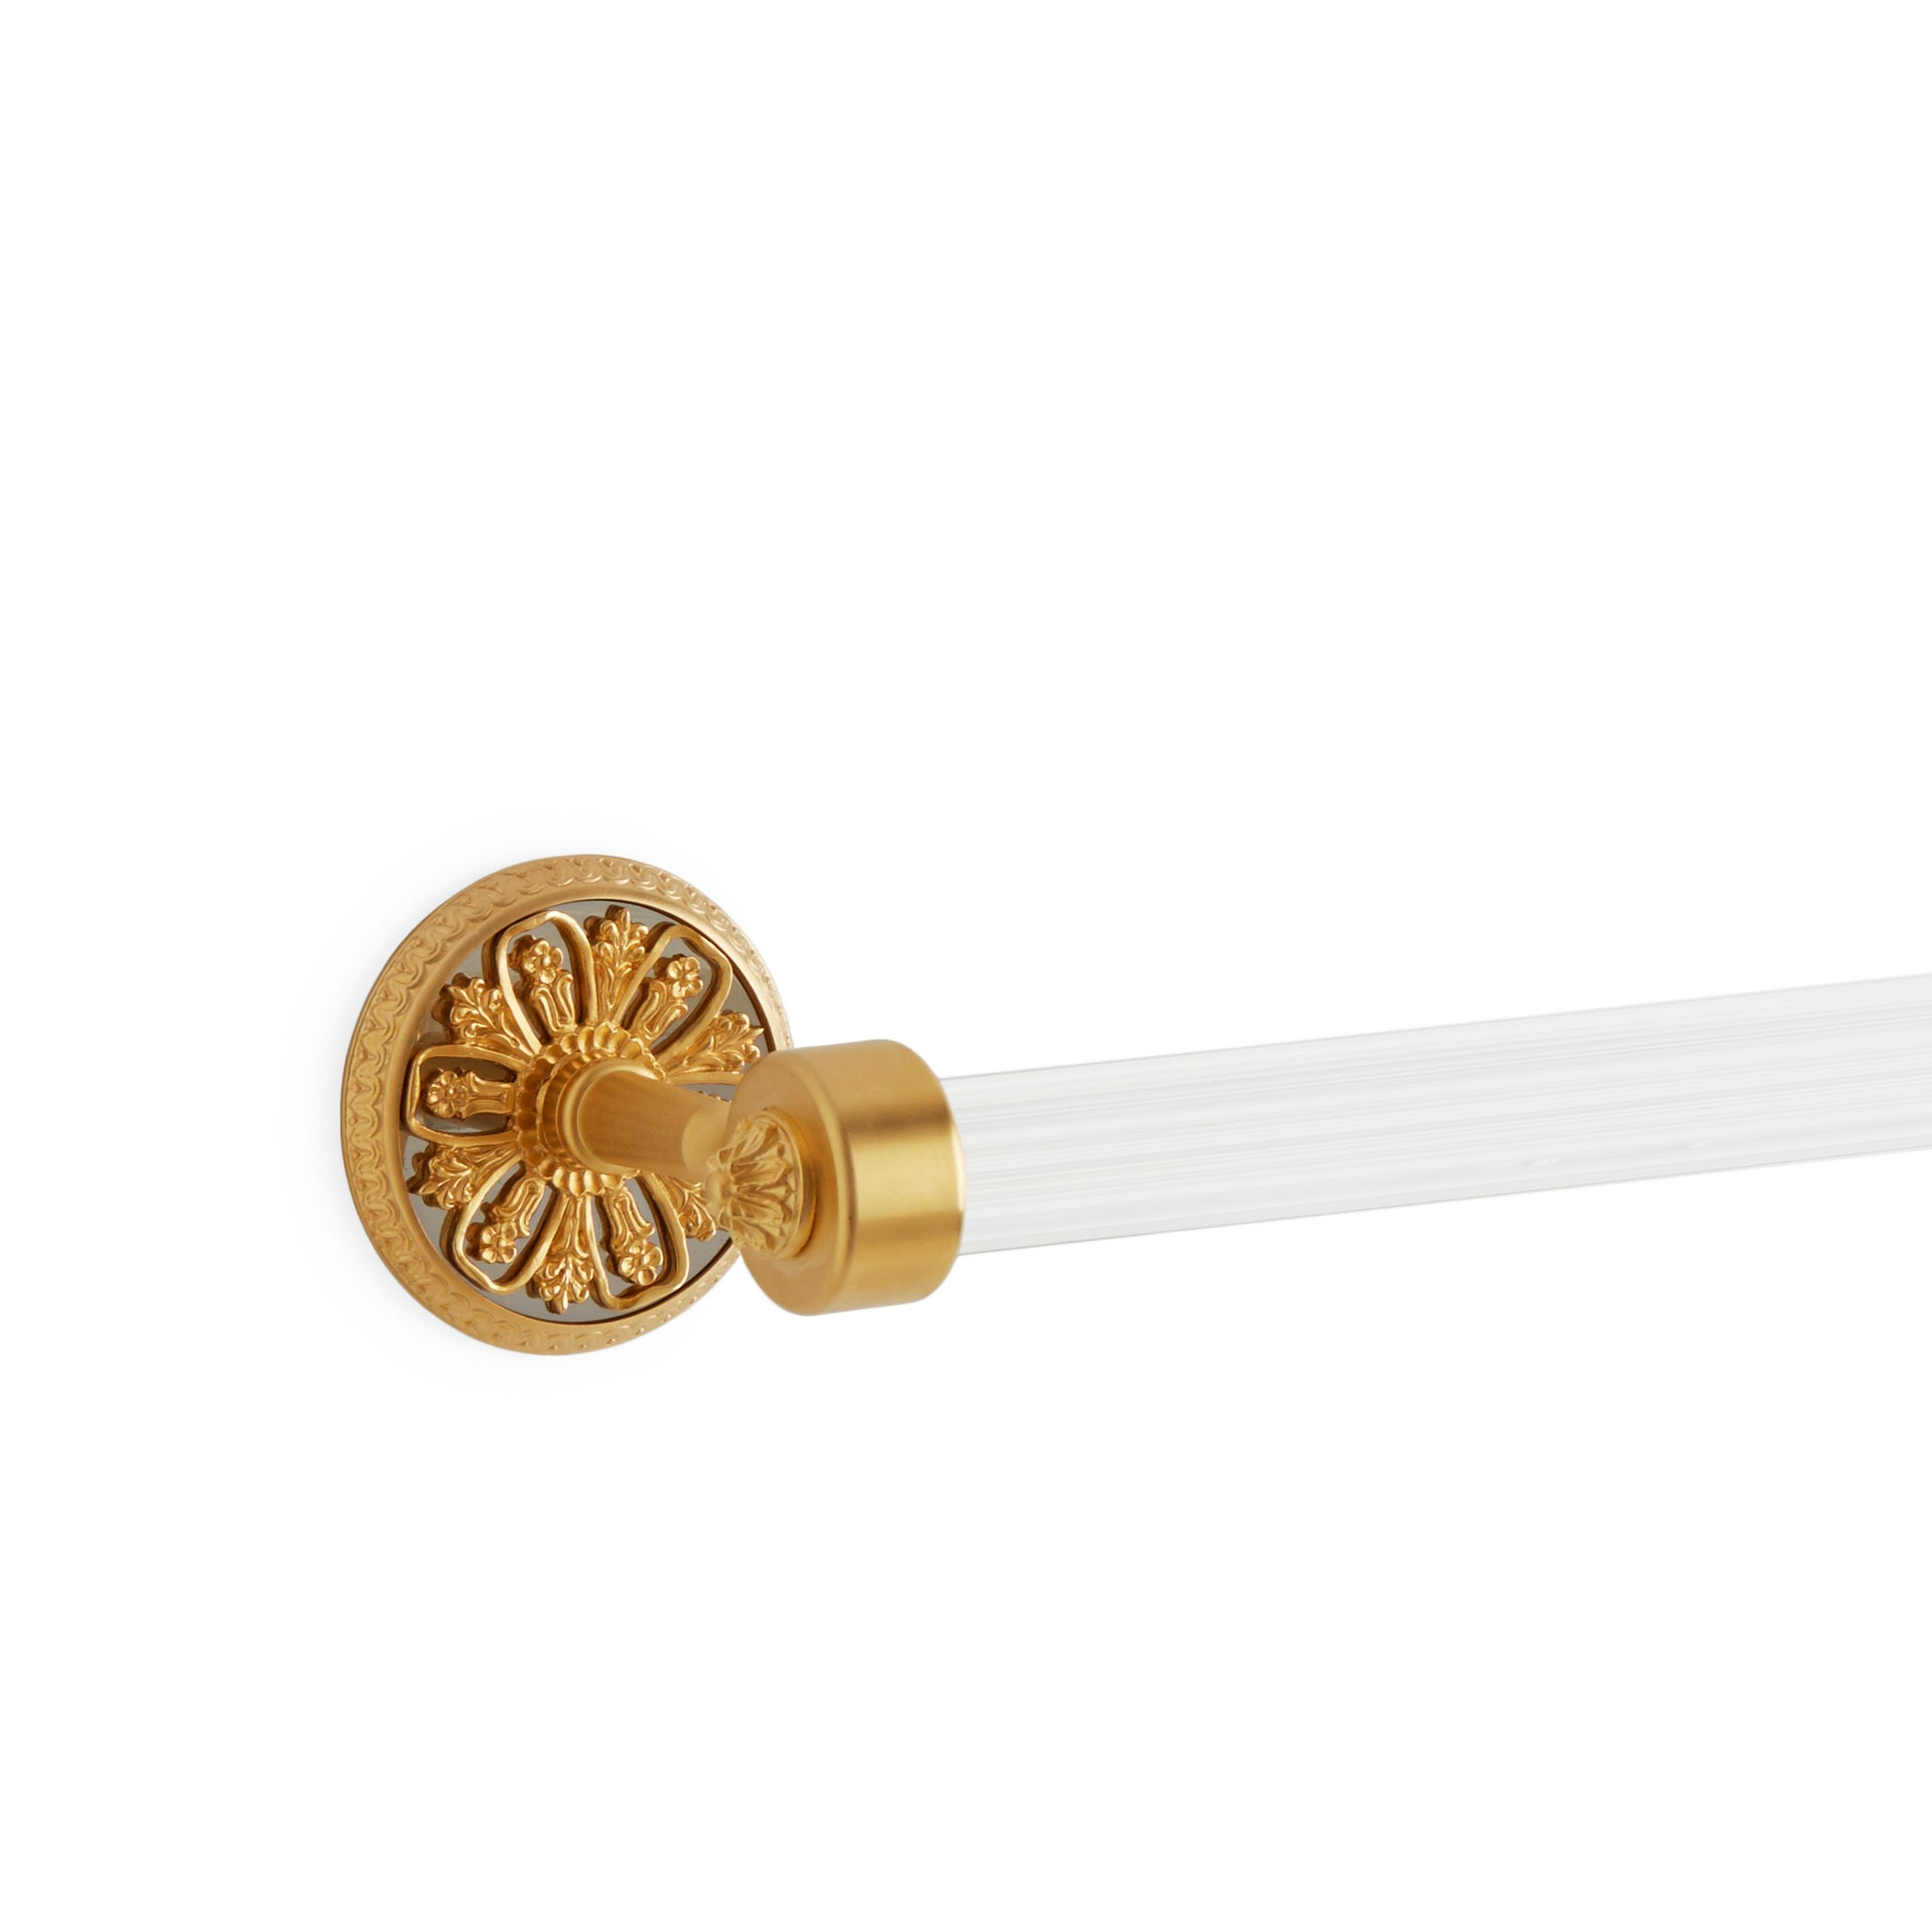 3663-18FL-GP/CP Sherle Wagner International Filigree Towel Bar in Gold Plate and Polished Chrome metal finish